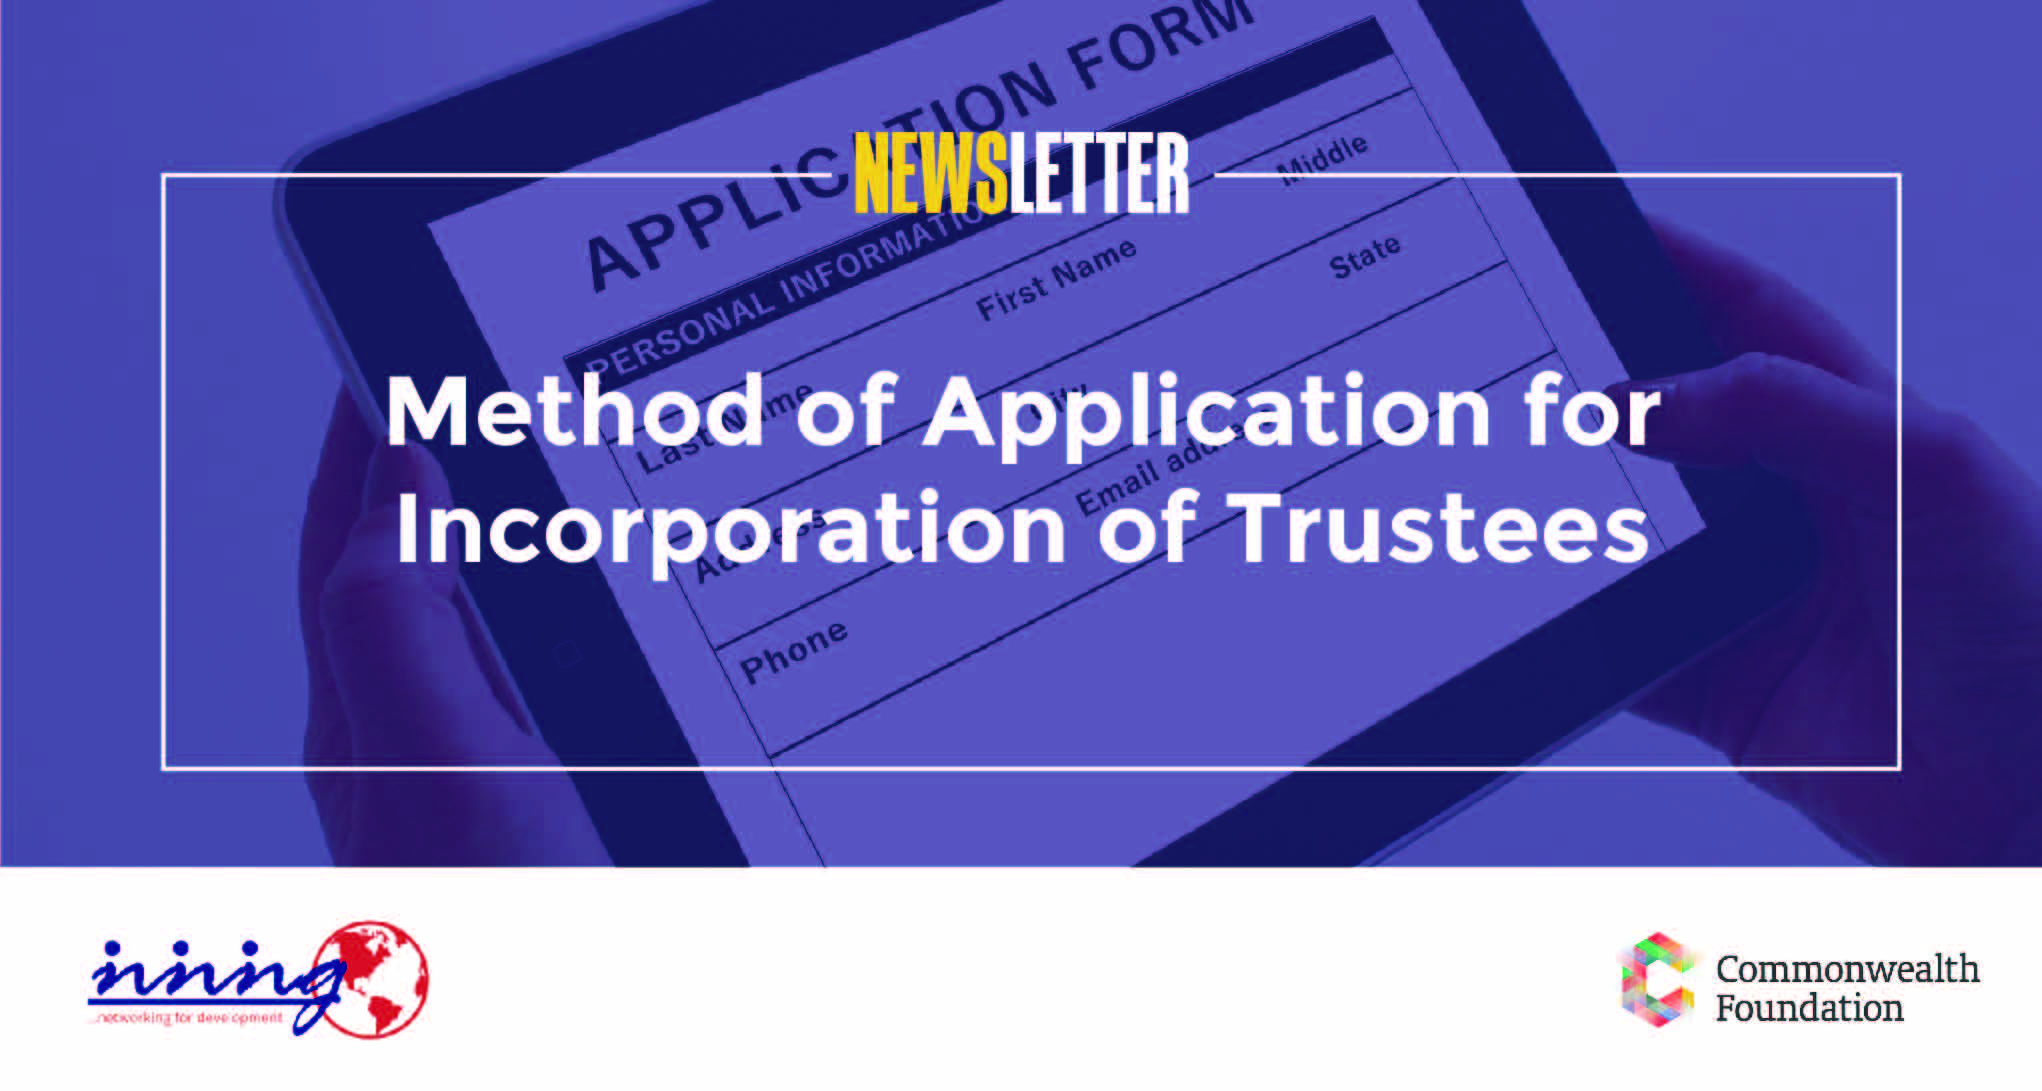 Method of Application for Incorporation of Trustees (April, 2019)